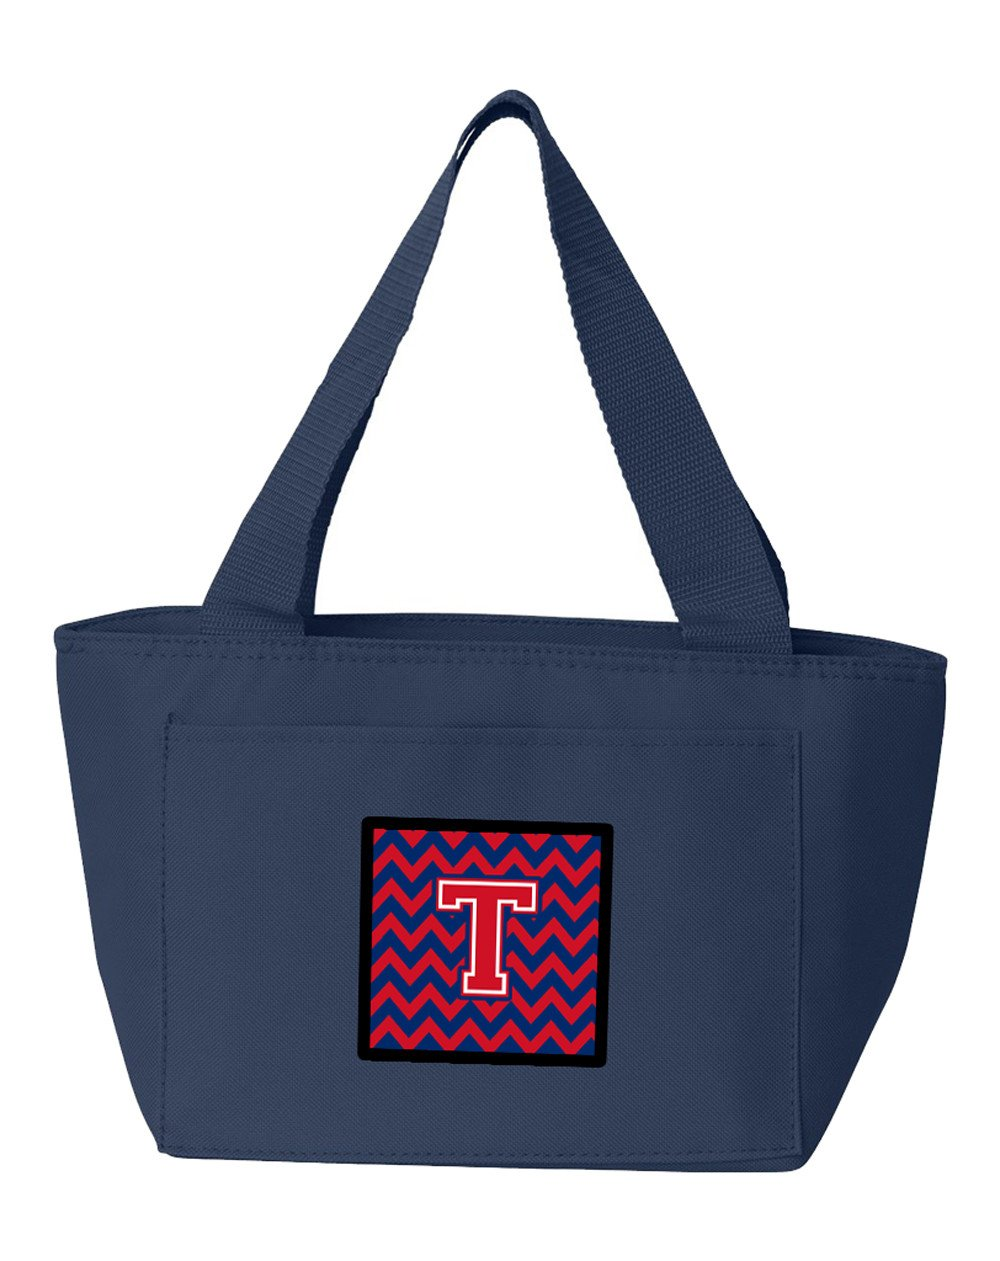 Letter T Chevron Yale Blue and Crimson Lunch Bag CJ1054-TNA-8808 by Caroline's Treasures